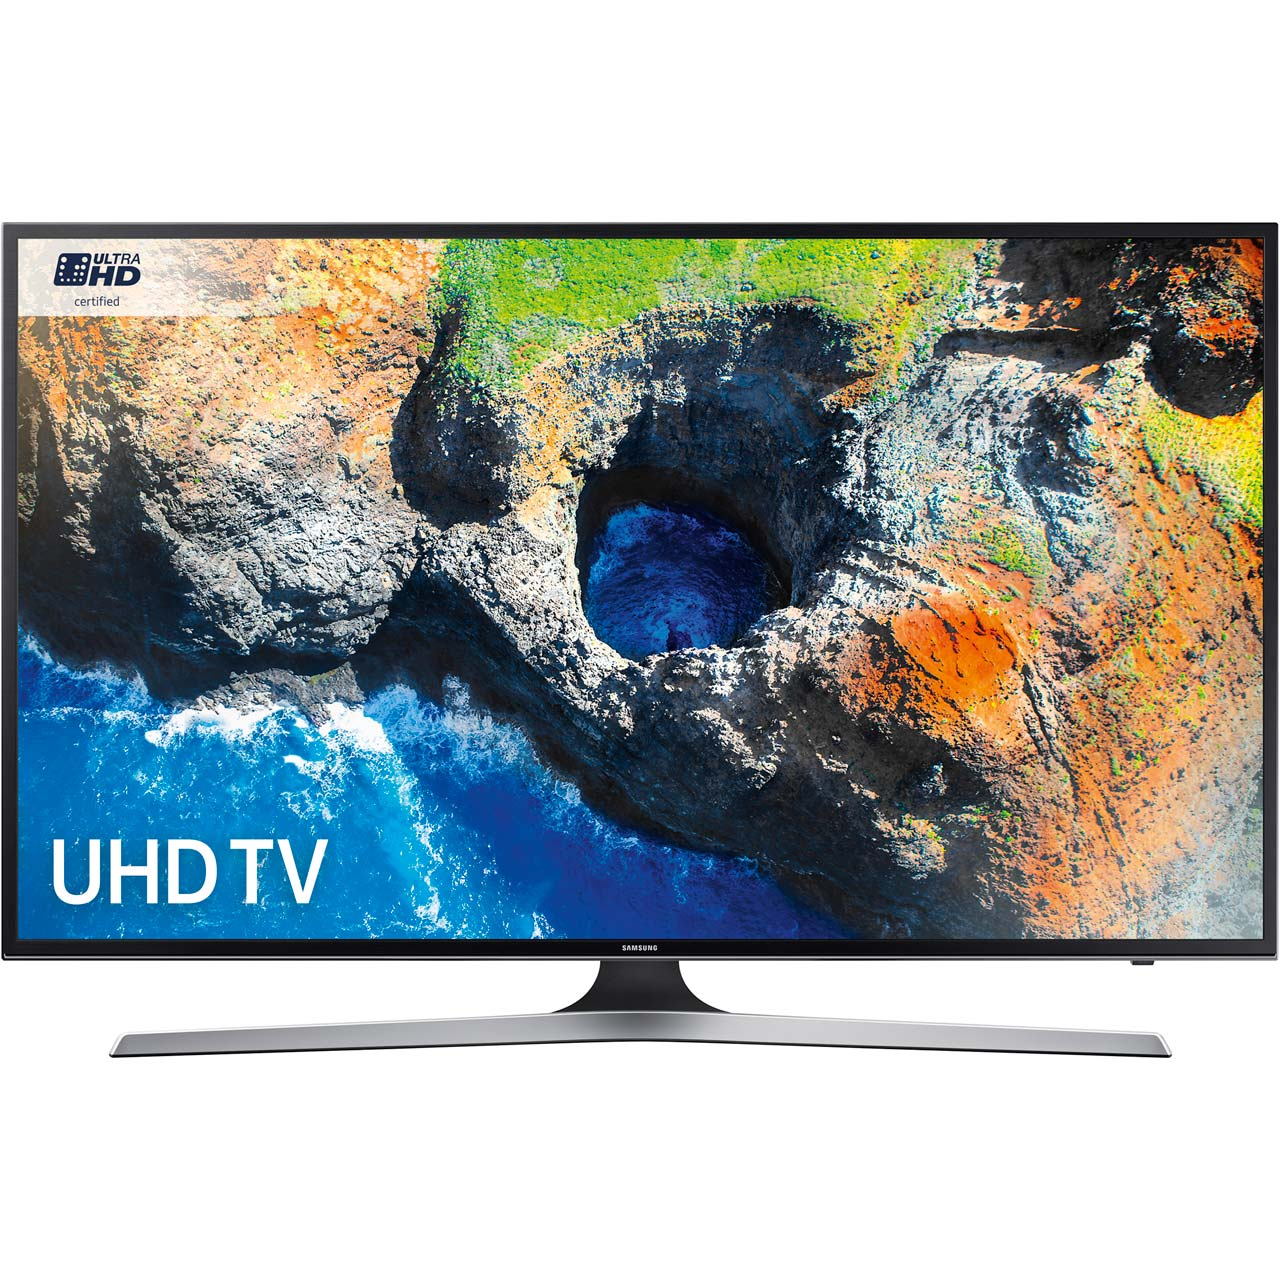 Ultra HD TV - how to choose the best